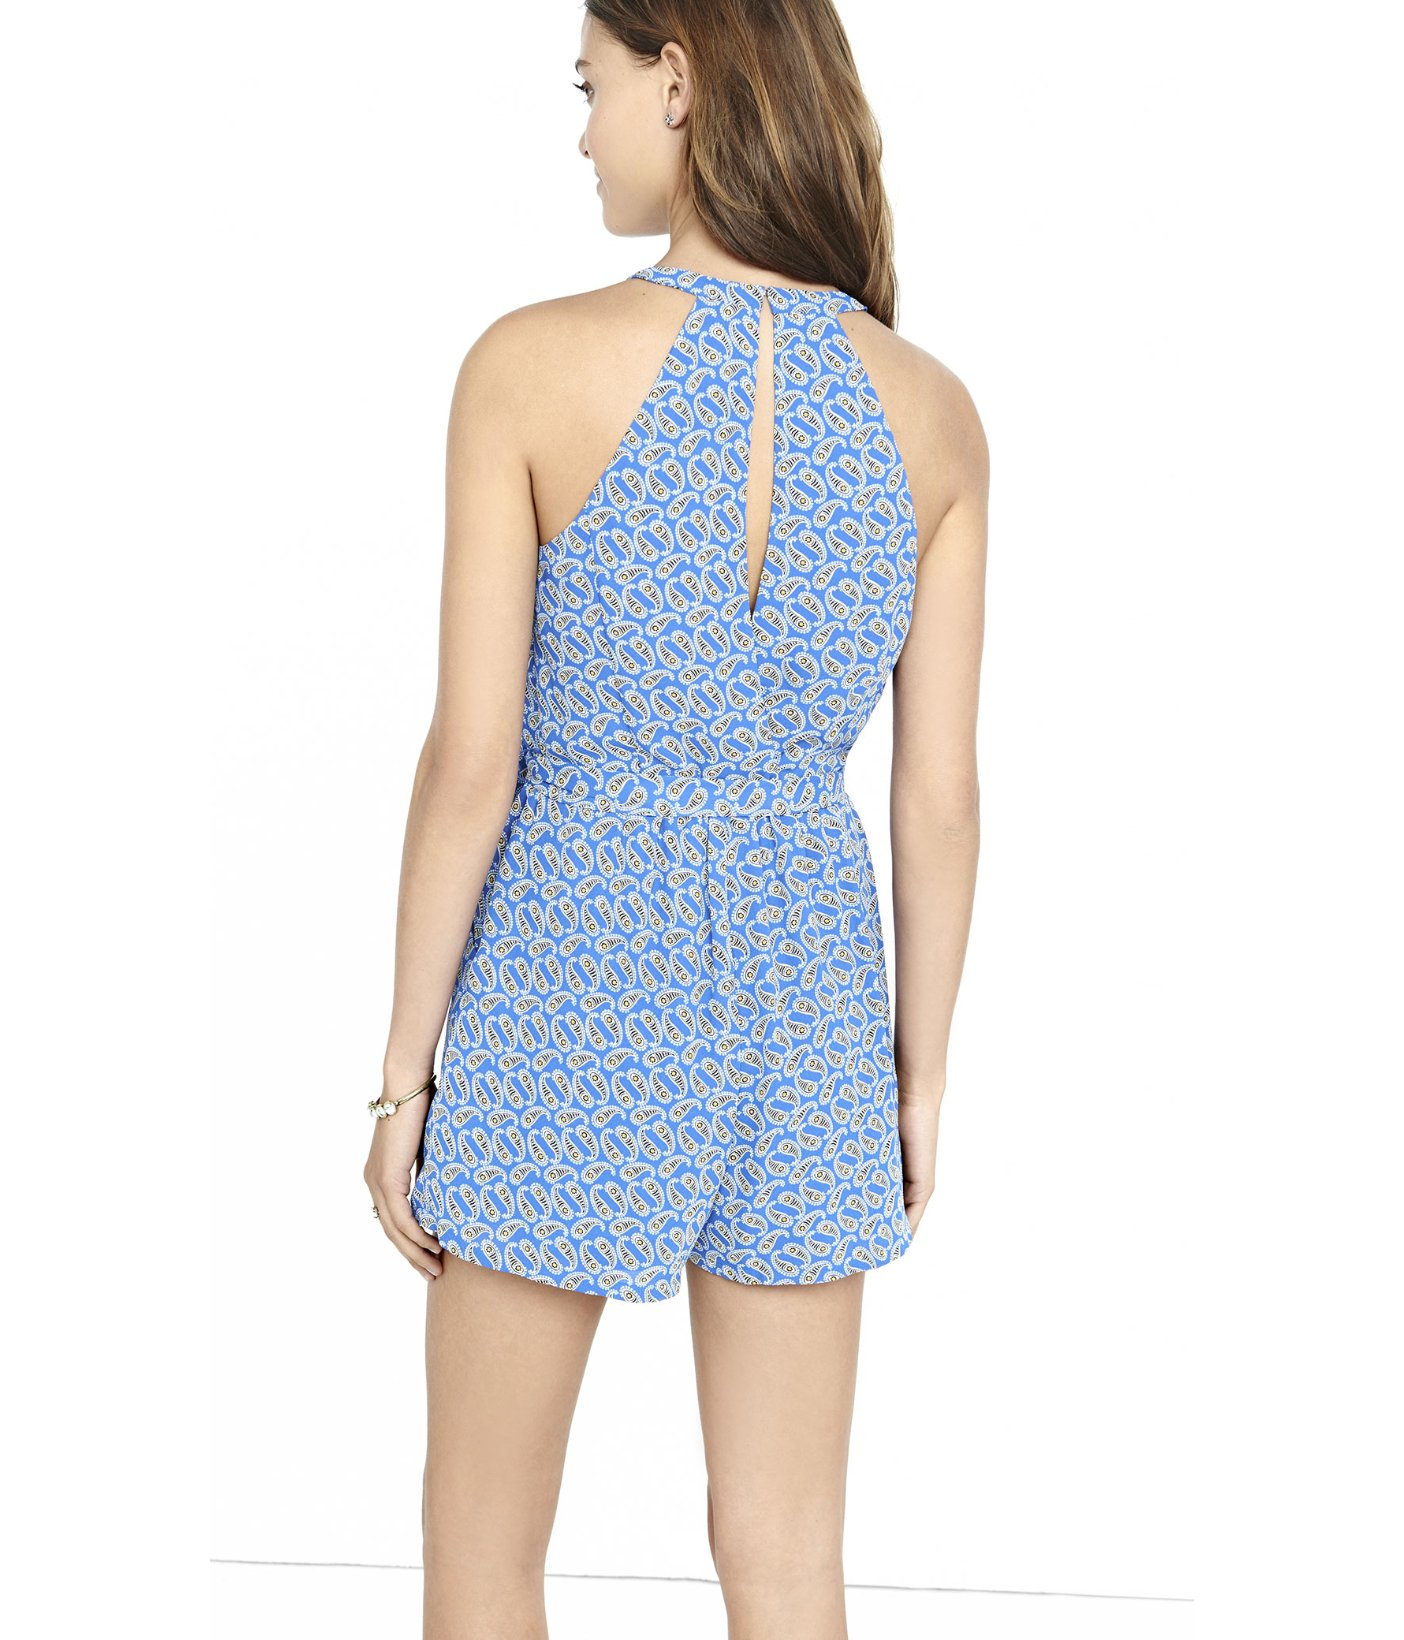 f104485a694 Lyst - Express Paisley Print Surplice Front Halter Romper in Blue